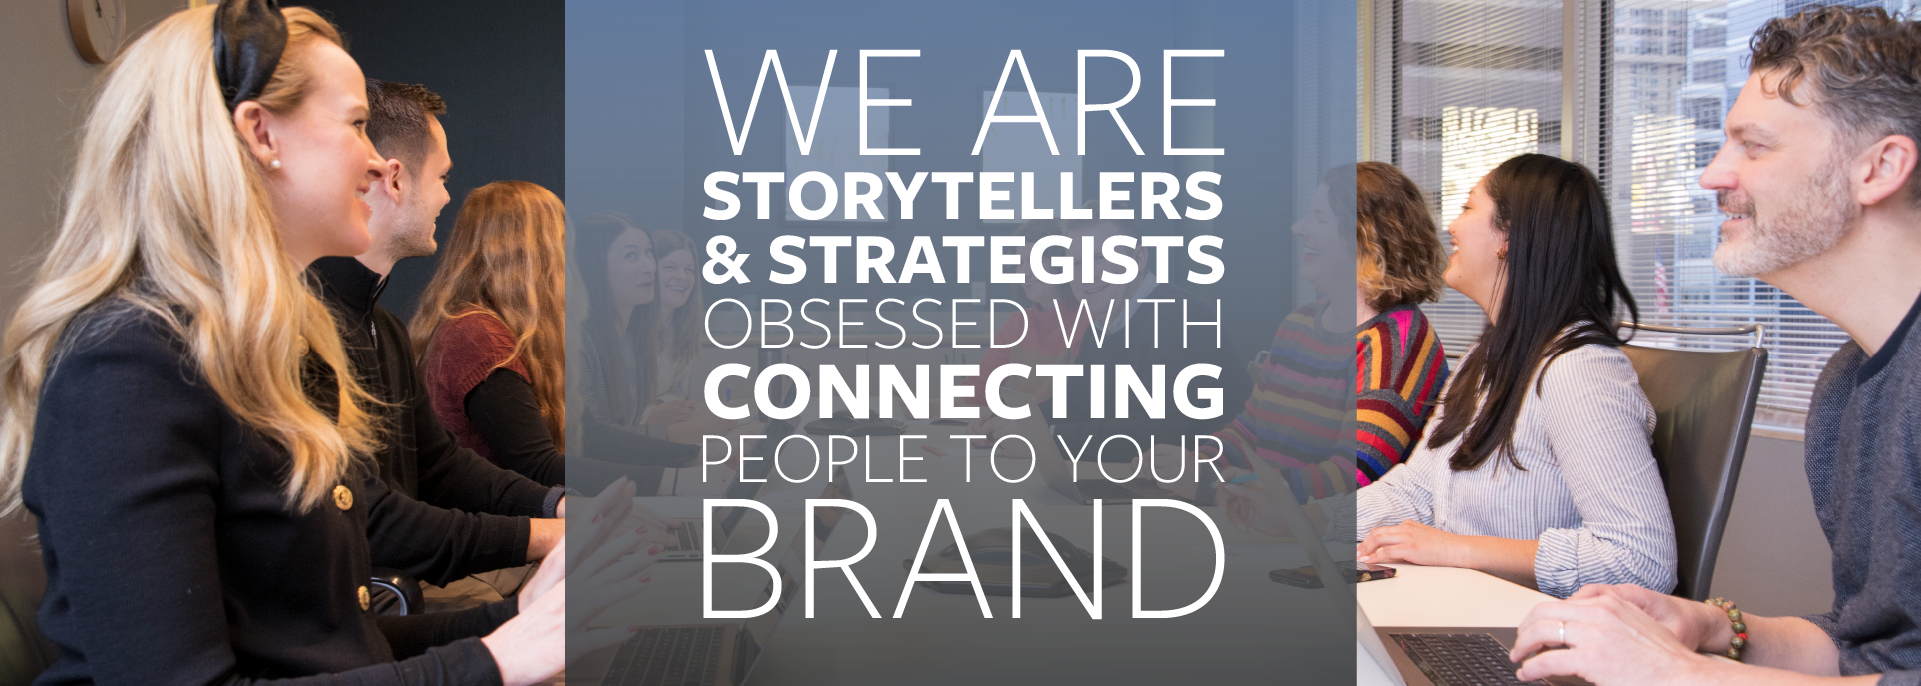 We are storytellers and strategist obsessed with connecting people to your brand